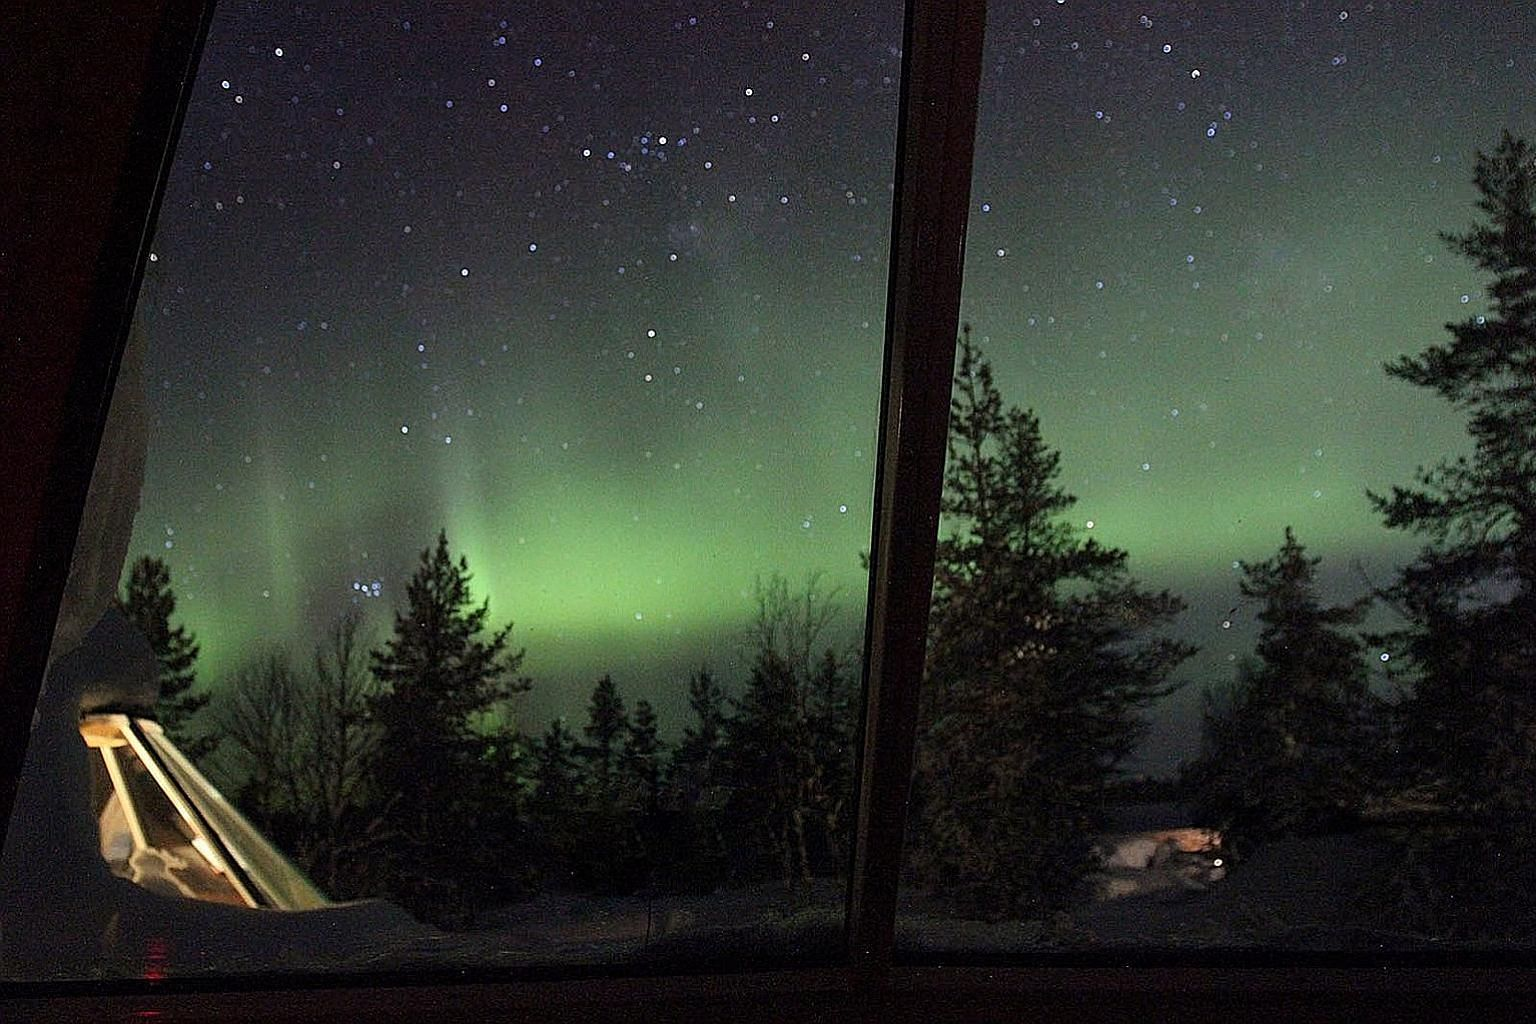 Travellers can catch a glimpse of the aurora borealis (above) at a forest resort in Saariselka, Finland, and lucky ones on the North Cape tour might spy elk.